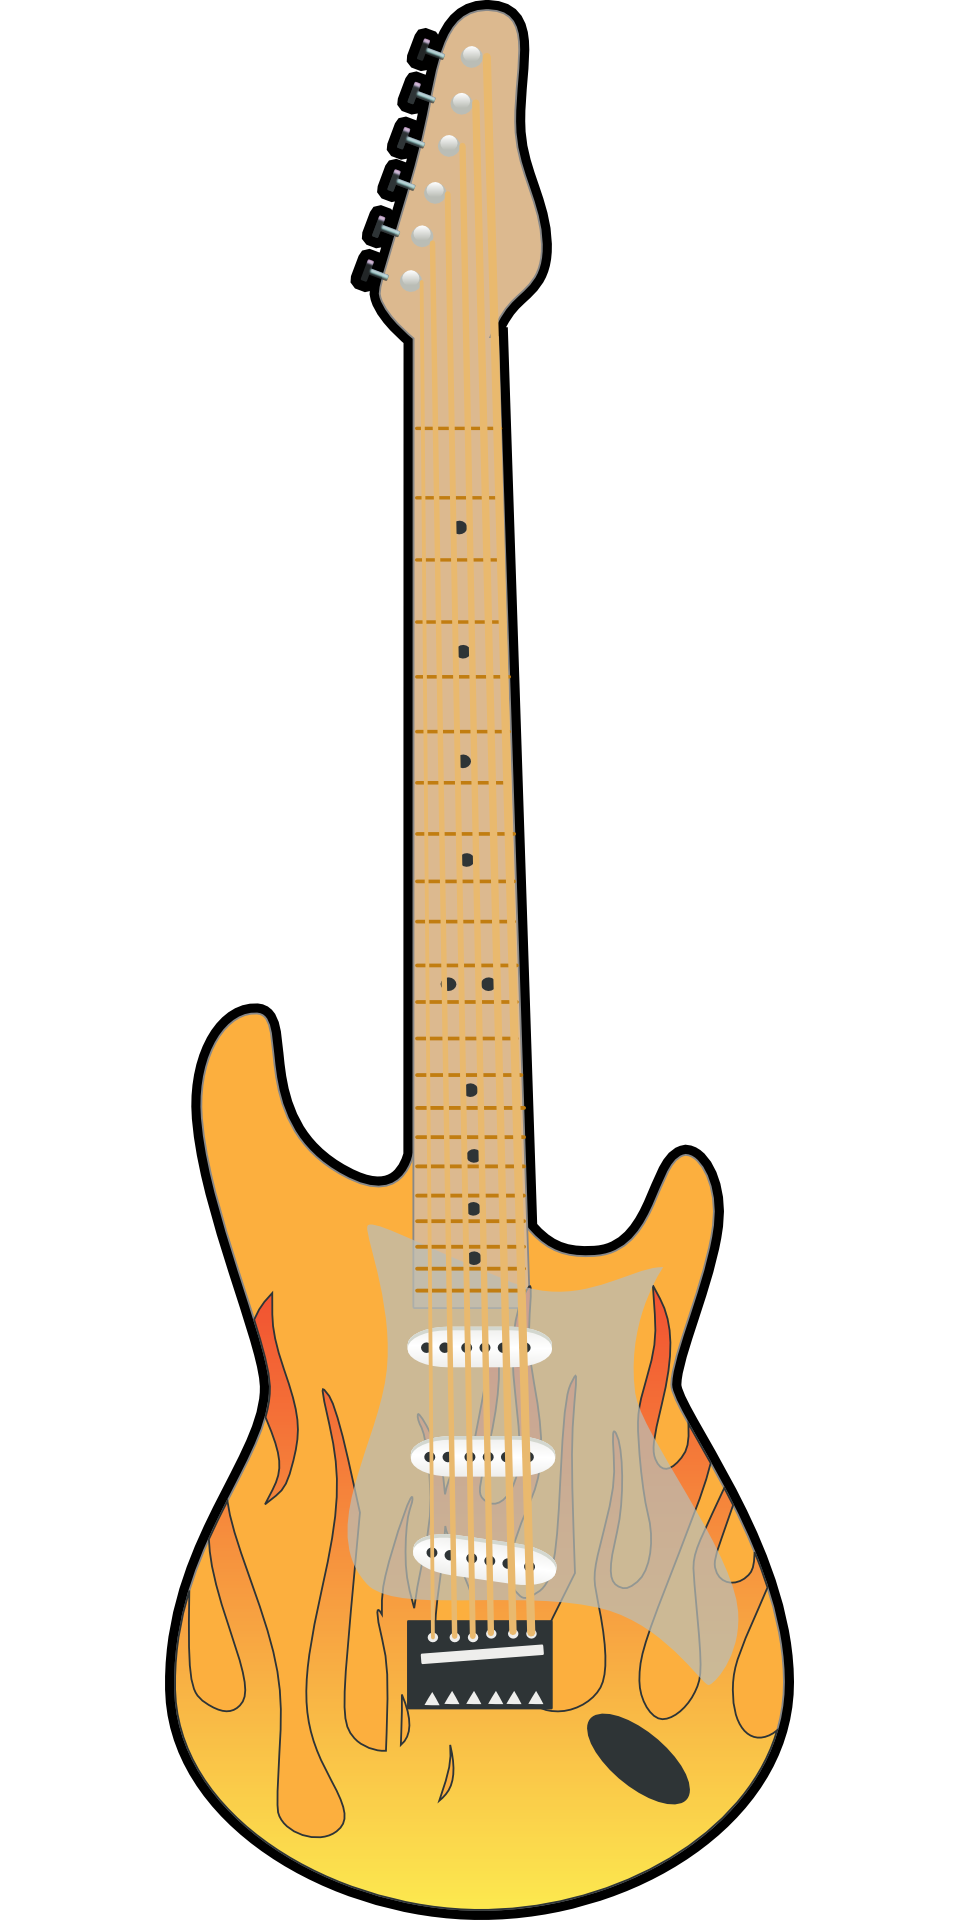 Drawing guitar rock. Yellow brown musical instrument